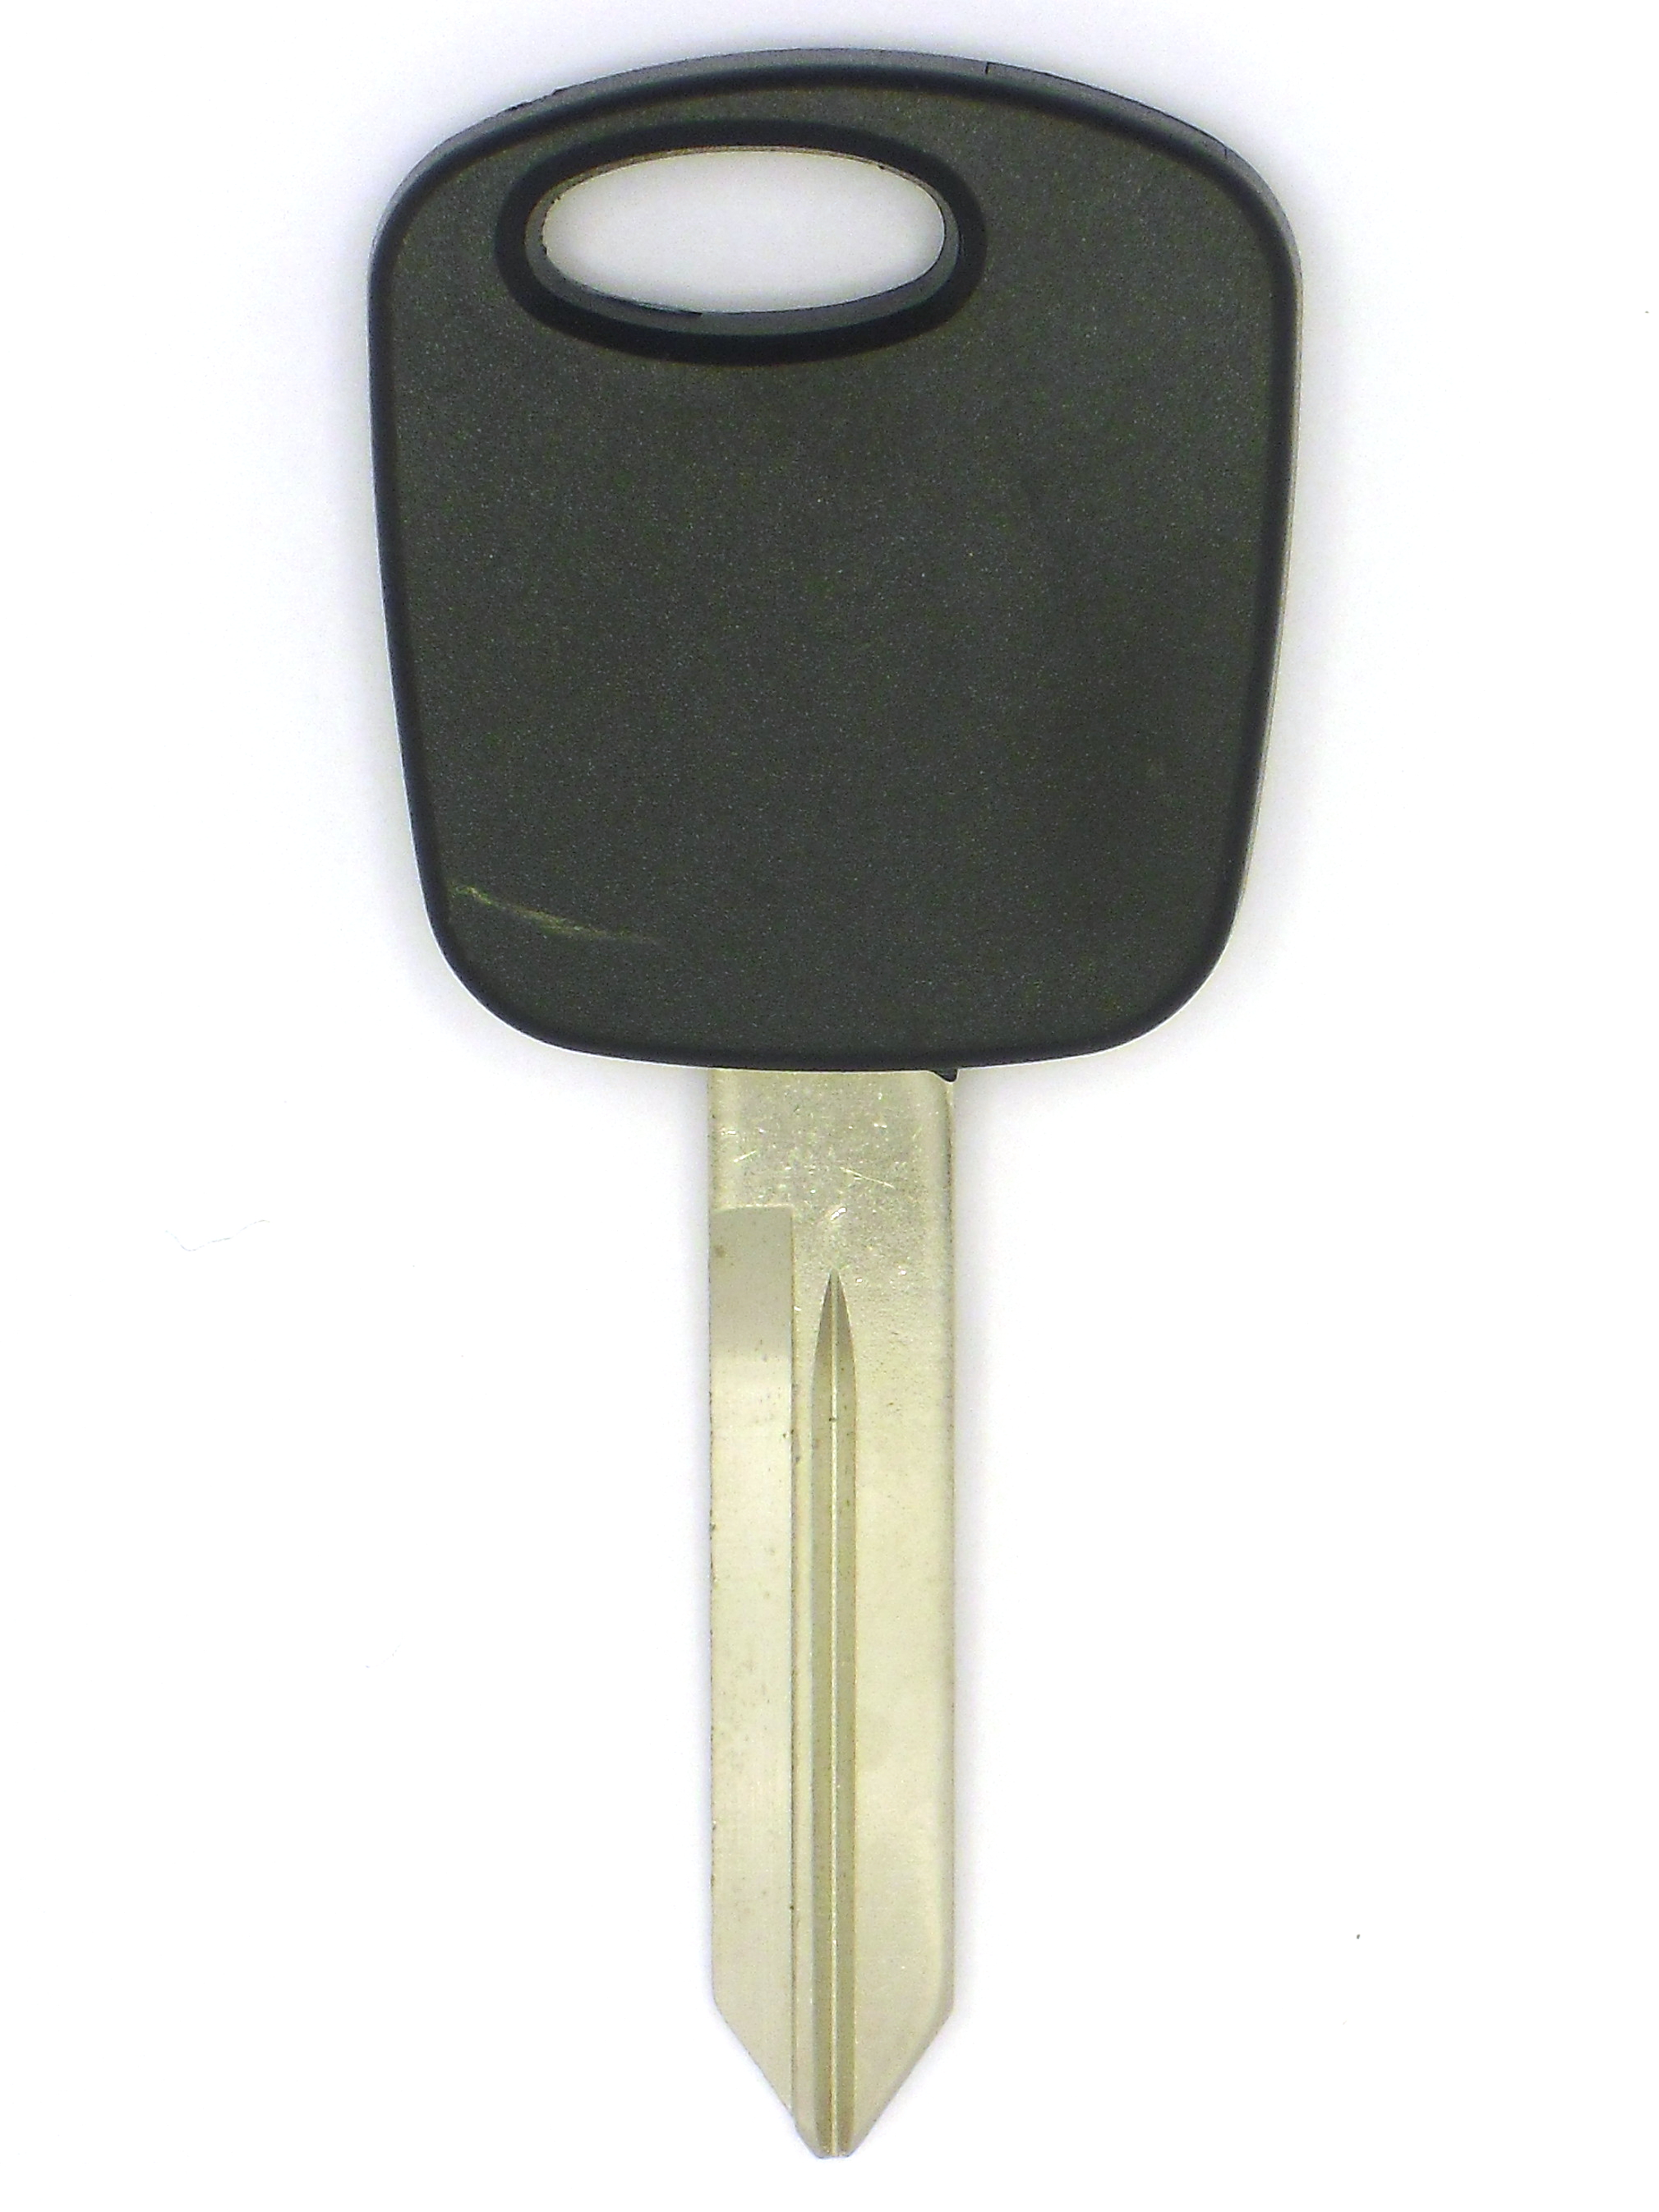 Ford/Lincoln/Mazda Transponder Key - New/Uncut